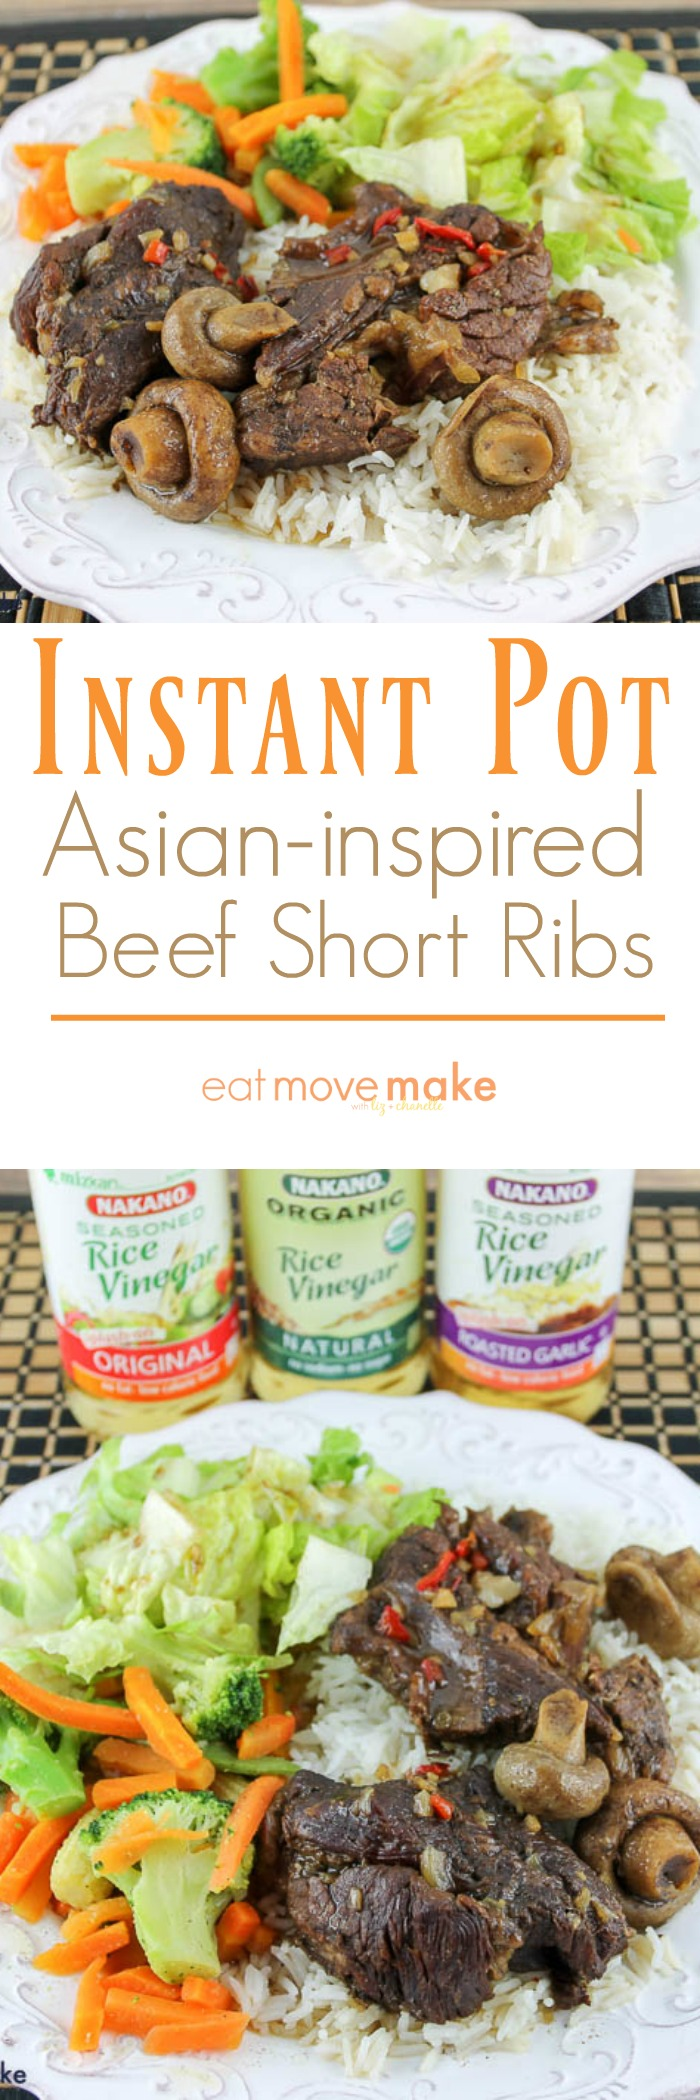 Instant pot Asian-inspired beef short ribs served with rice and salad on plate